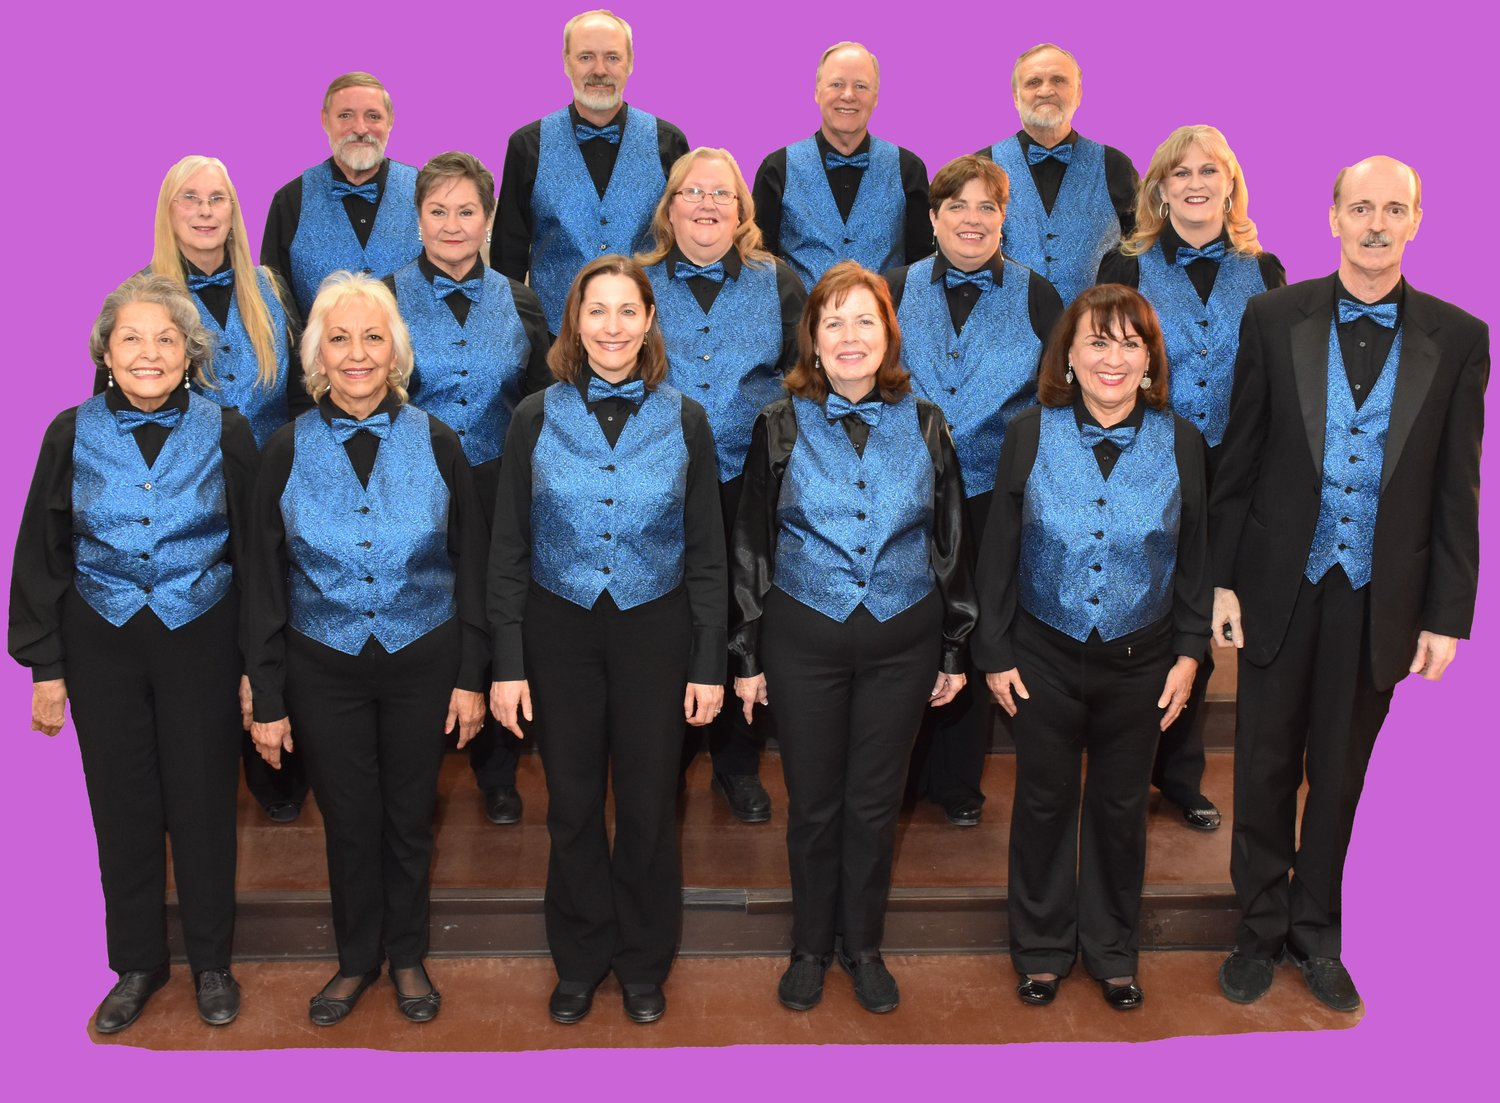 The New Desert Harmony Singers, with Director Don Harlow at far right wearing the suit.